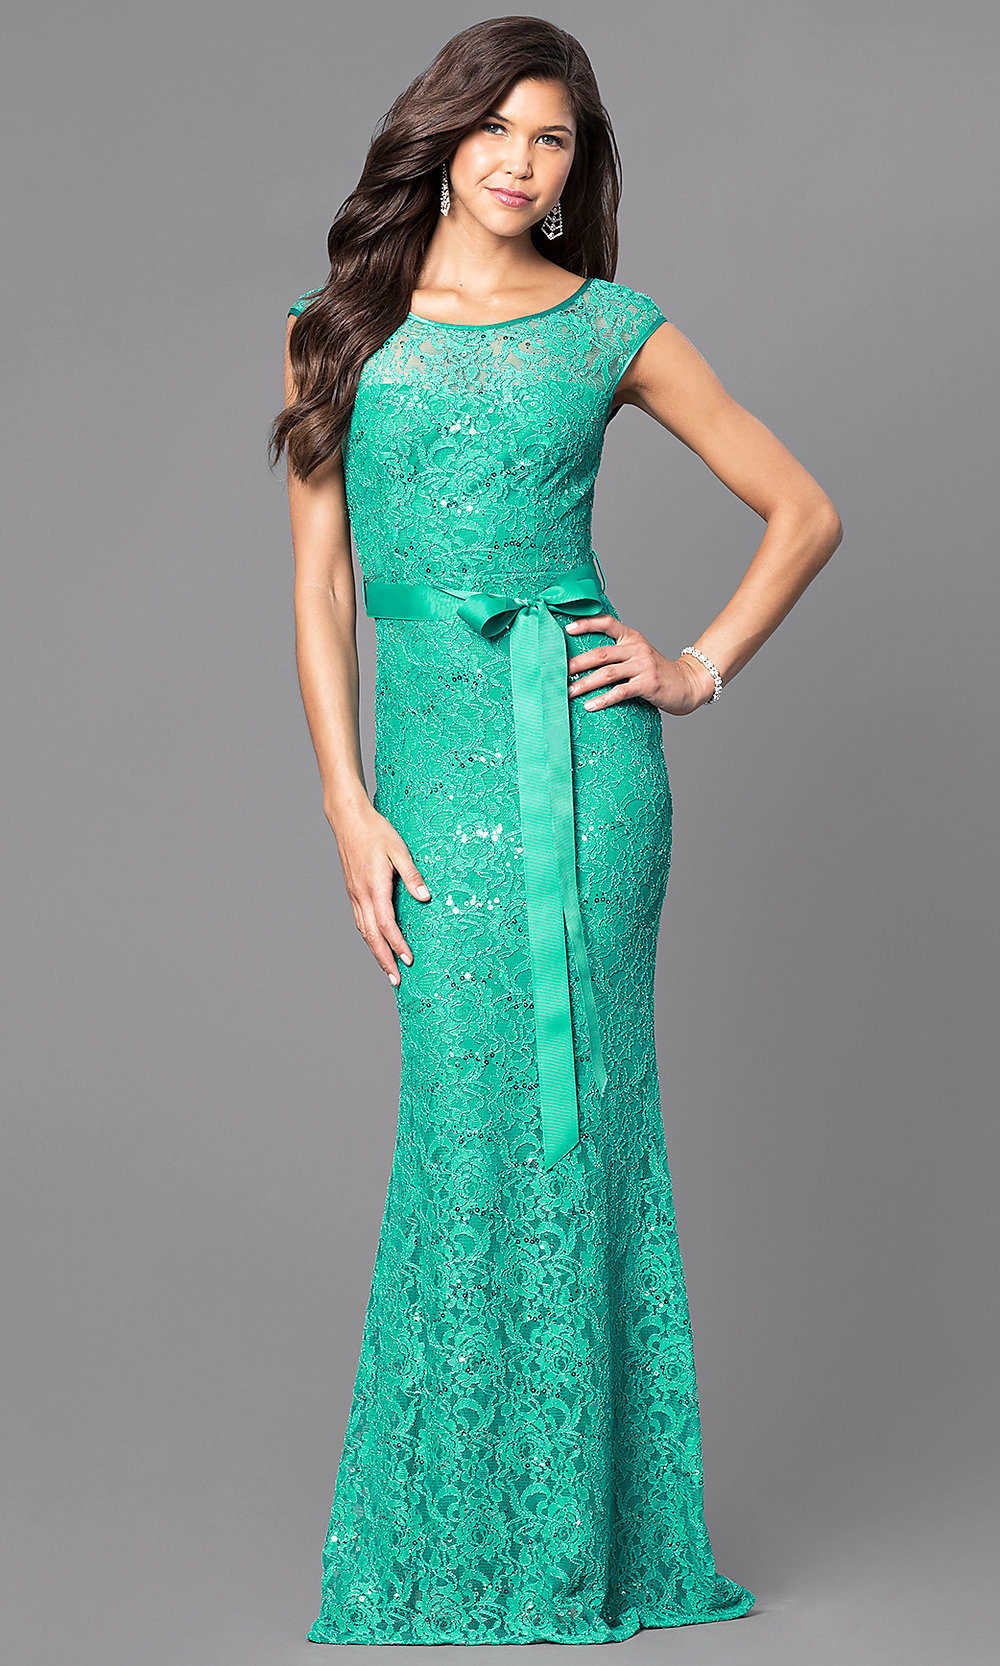 Sequined-Lace Prom Dress with Cap Sleeves -PromGirl